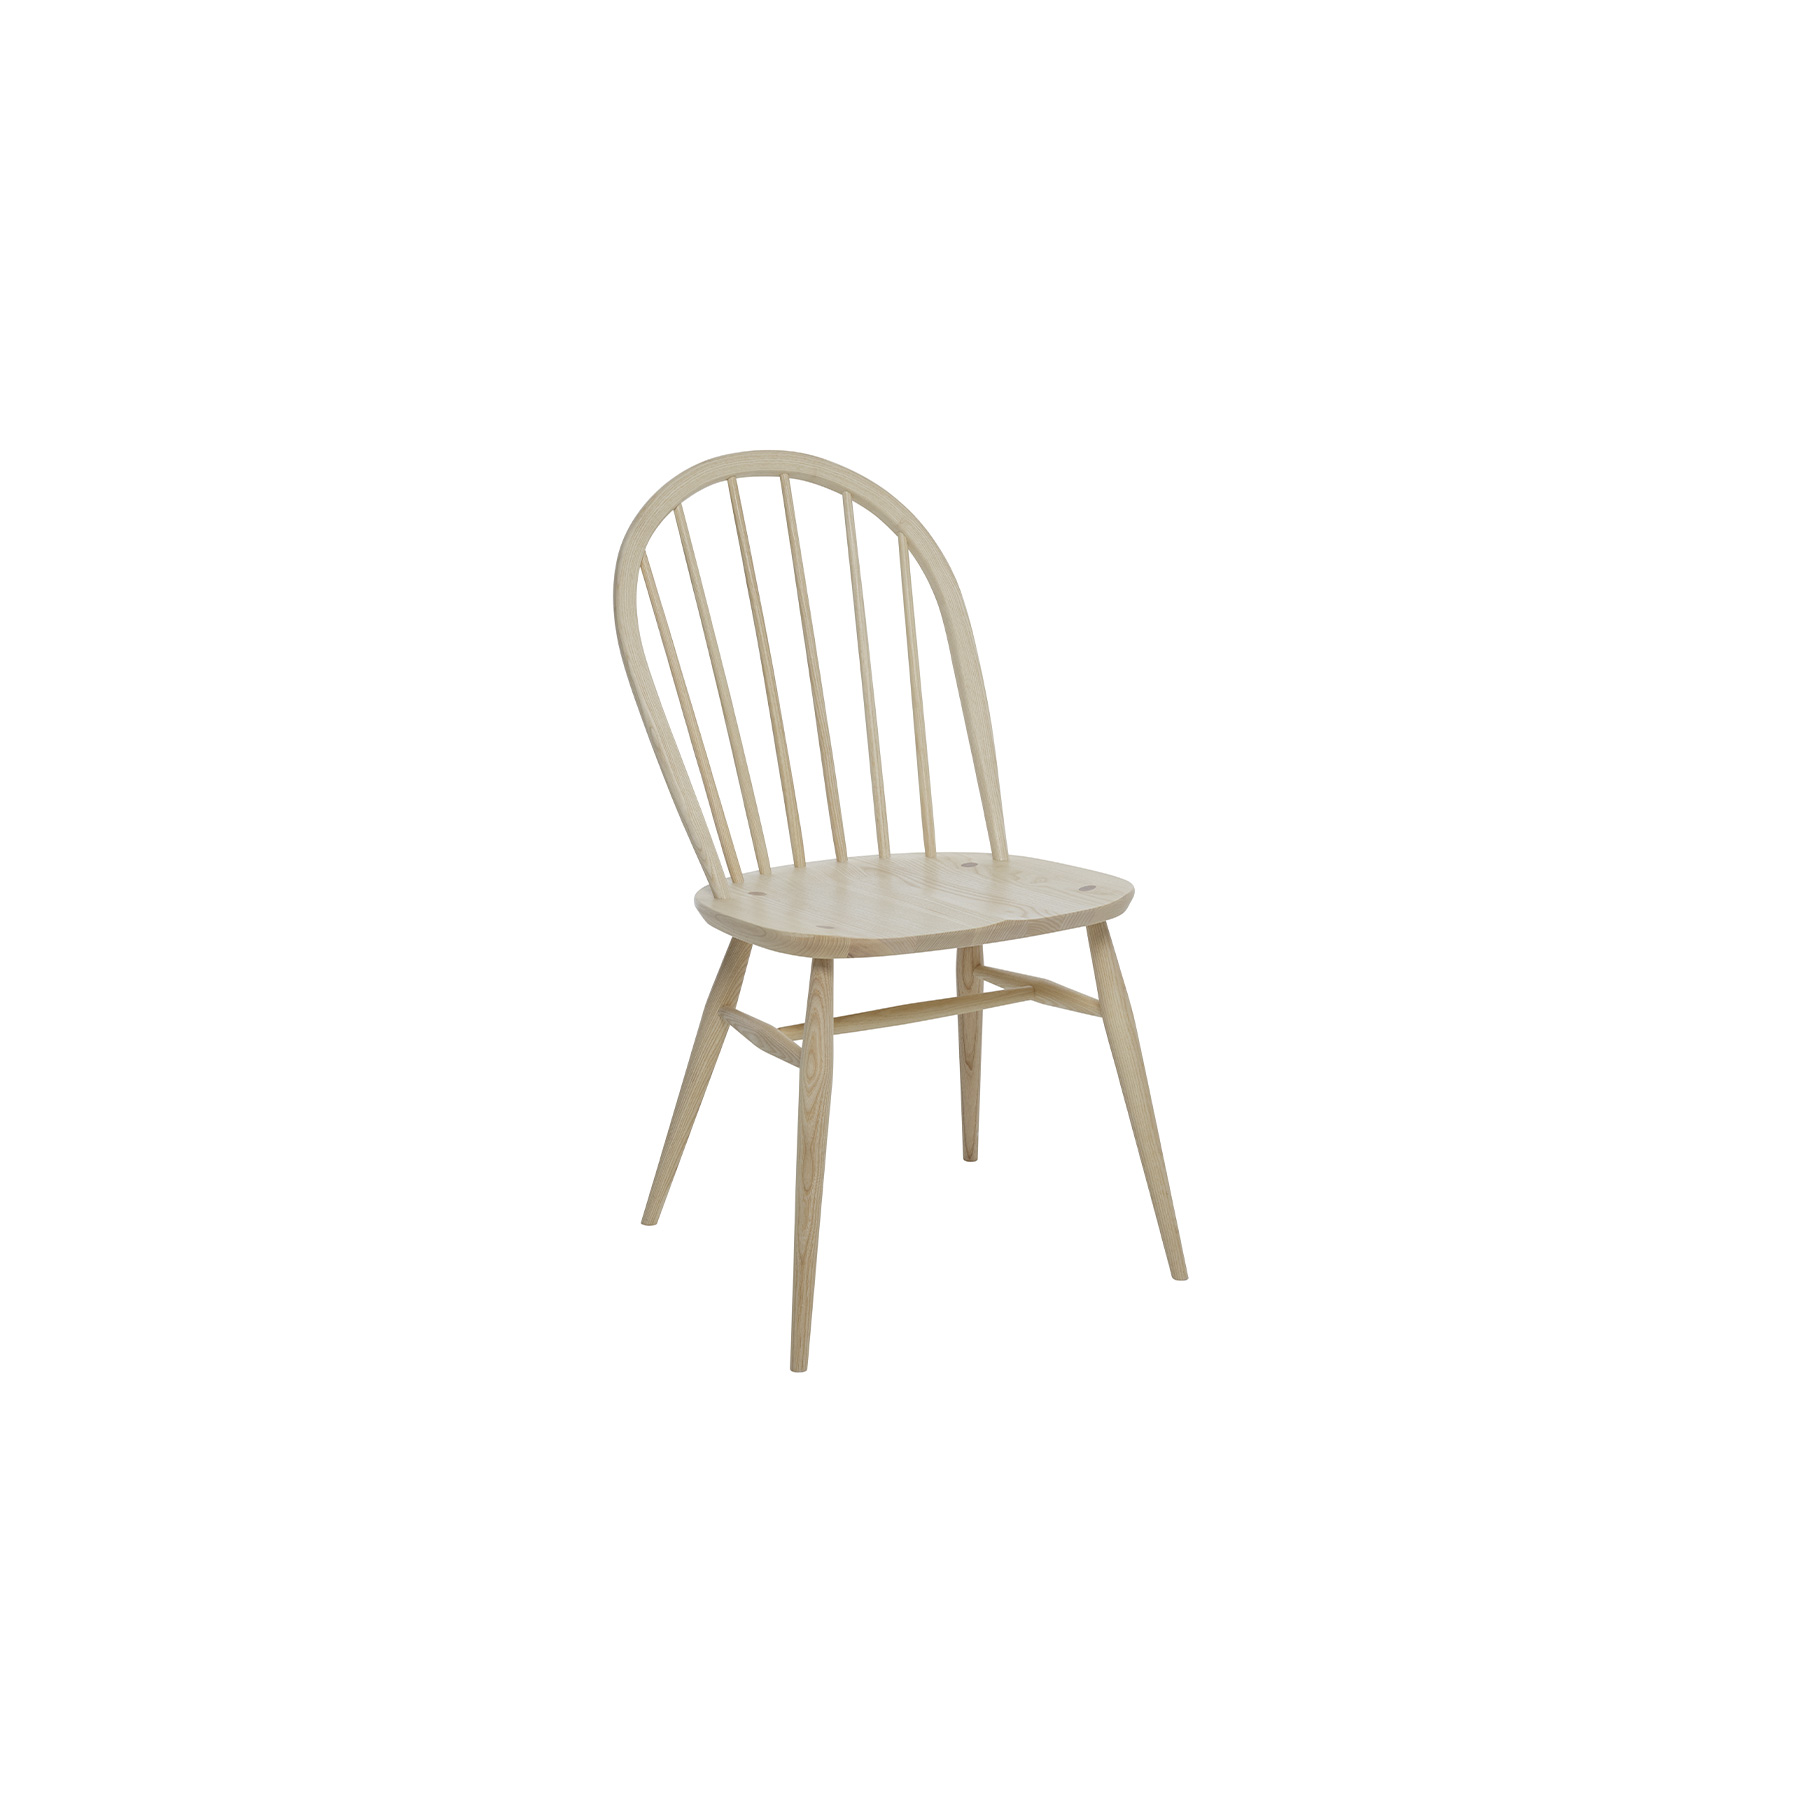 Originals Winsdor Dining Chair - The Ercol Originals are pieces of timeless and classic design that never date or show their age. It is furniture that is as relevant and as functional now as it was when it was created in the 1950s and 1960s. This furniture was designed by ercol's founder, Lucian Ercolani, who drew for his inspiration on the time proven local design and craft in the Chiltern Hills around where he lived and built his first factory in 1920 in High Wycombe. Using the strength of beech and the beauty of elm he carried this definition on into a huge variety of dining, kitchen, and school chairs and then extended the idiom into the low easy chair range epitomised by the 206 armchair and the studio couch. The beauty of the colour and the grain of the elm took Lucian on to use elm for the tables and cabinets of the Originals and the following Windsor range. This distinctive Windsor dining chair combines strength and durability with classic elegance. The six ash spindles and curved seatback, alongside the sculpted saddle seat provide a comfortable and supportive sit.  The chair bow is steam bent from a single straight ash rail and then sanded and shaped to give its subtle and elegant profile. Traditional wedge joints, where the legs come right through the seat and a wedge is then inserted into a cut, before the leg stump is hand sanded flush with the seat, both provide a lovely design detail and a very strong joint.  Further strength is provided by the H-underframe. This Windsor ash dining room furniture will be finished in your choice from a selection of lacquer colours that both protects the timber, whilst enabling you to choose the look to match your style and décor.    | Matter of Stuff